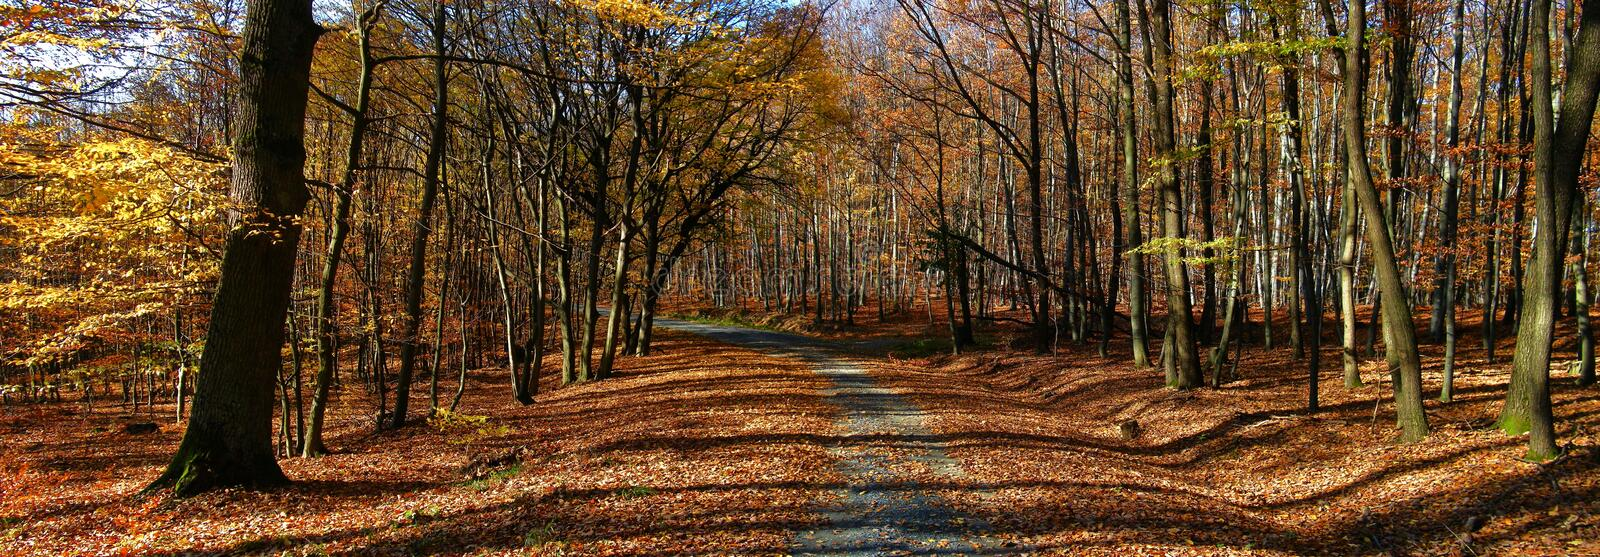 Broad leaf trees forest/woodland with gravel road at autumn afternoon daylight. Forest floor,foliage, panoramic photo. Bright colours,red, yellow. Chriby,Czech royalty free stock photos